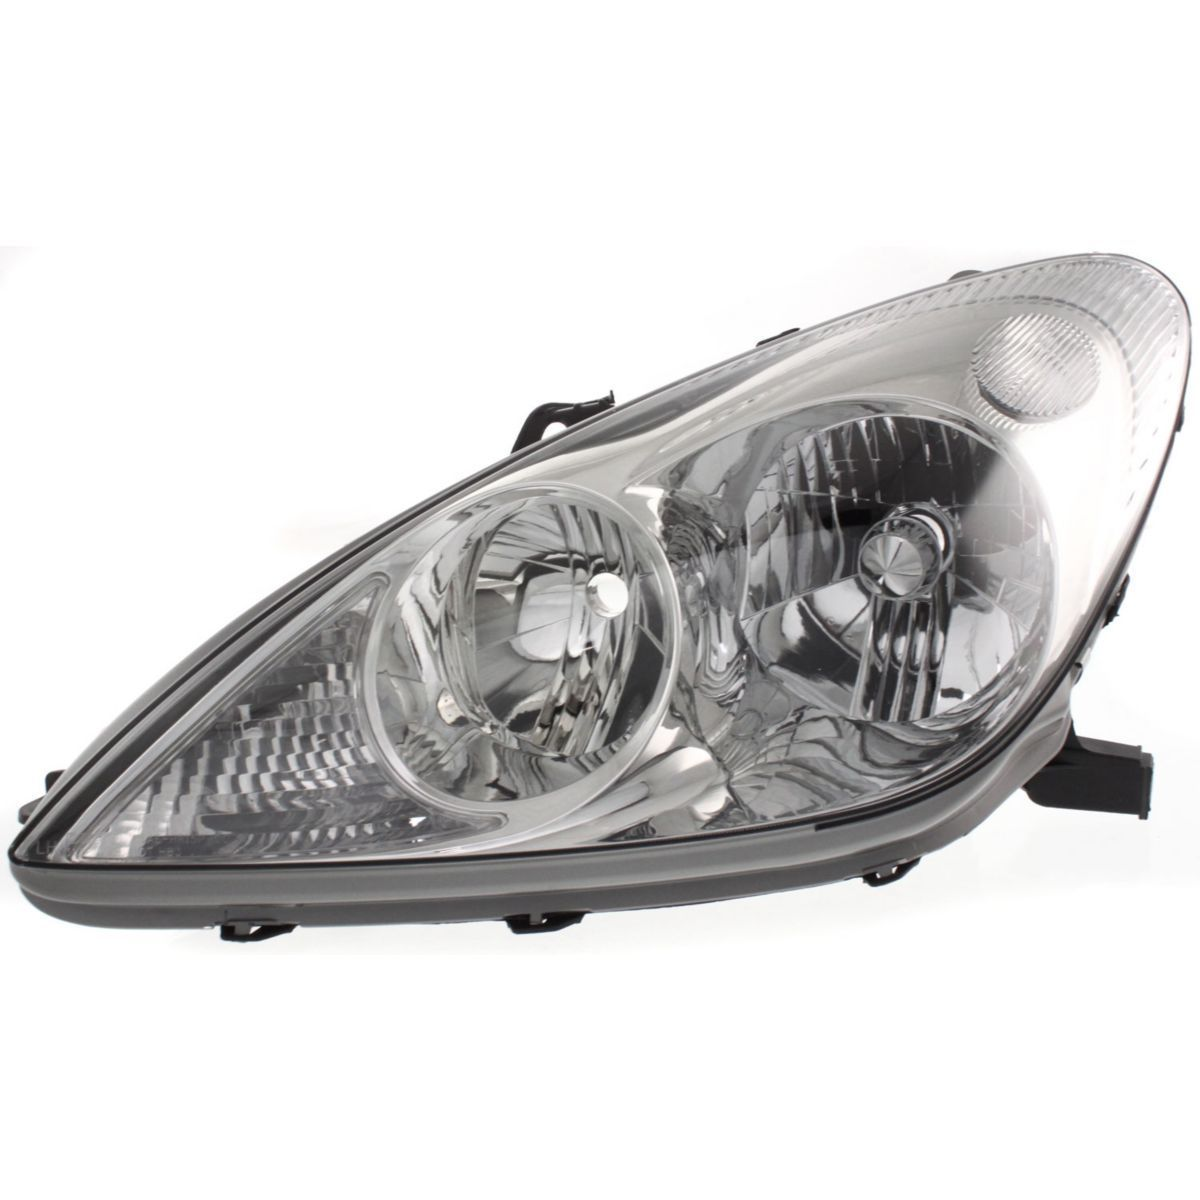 Lexus ES300 2002 2003 2004 left driver HID headlight